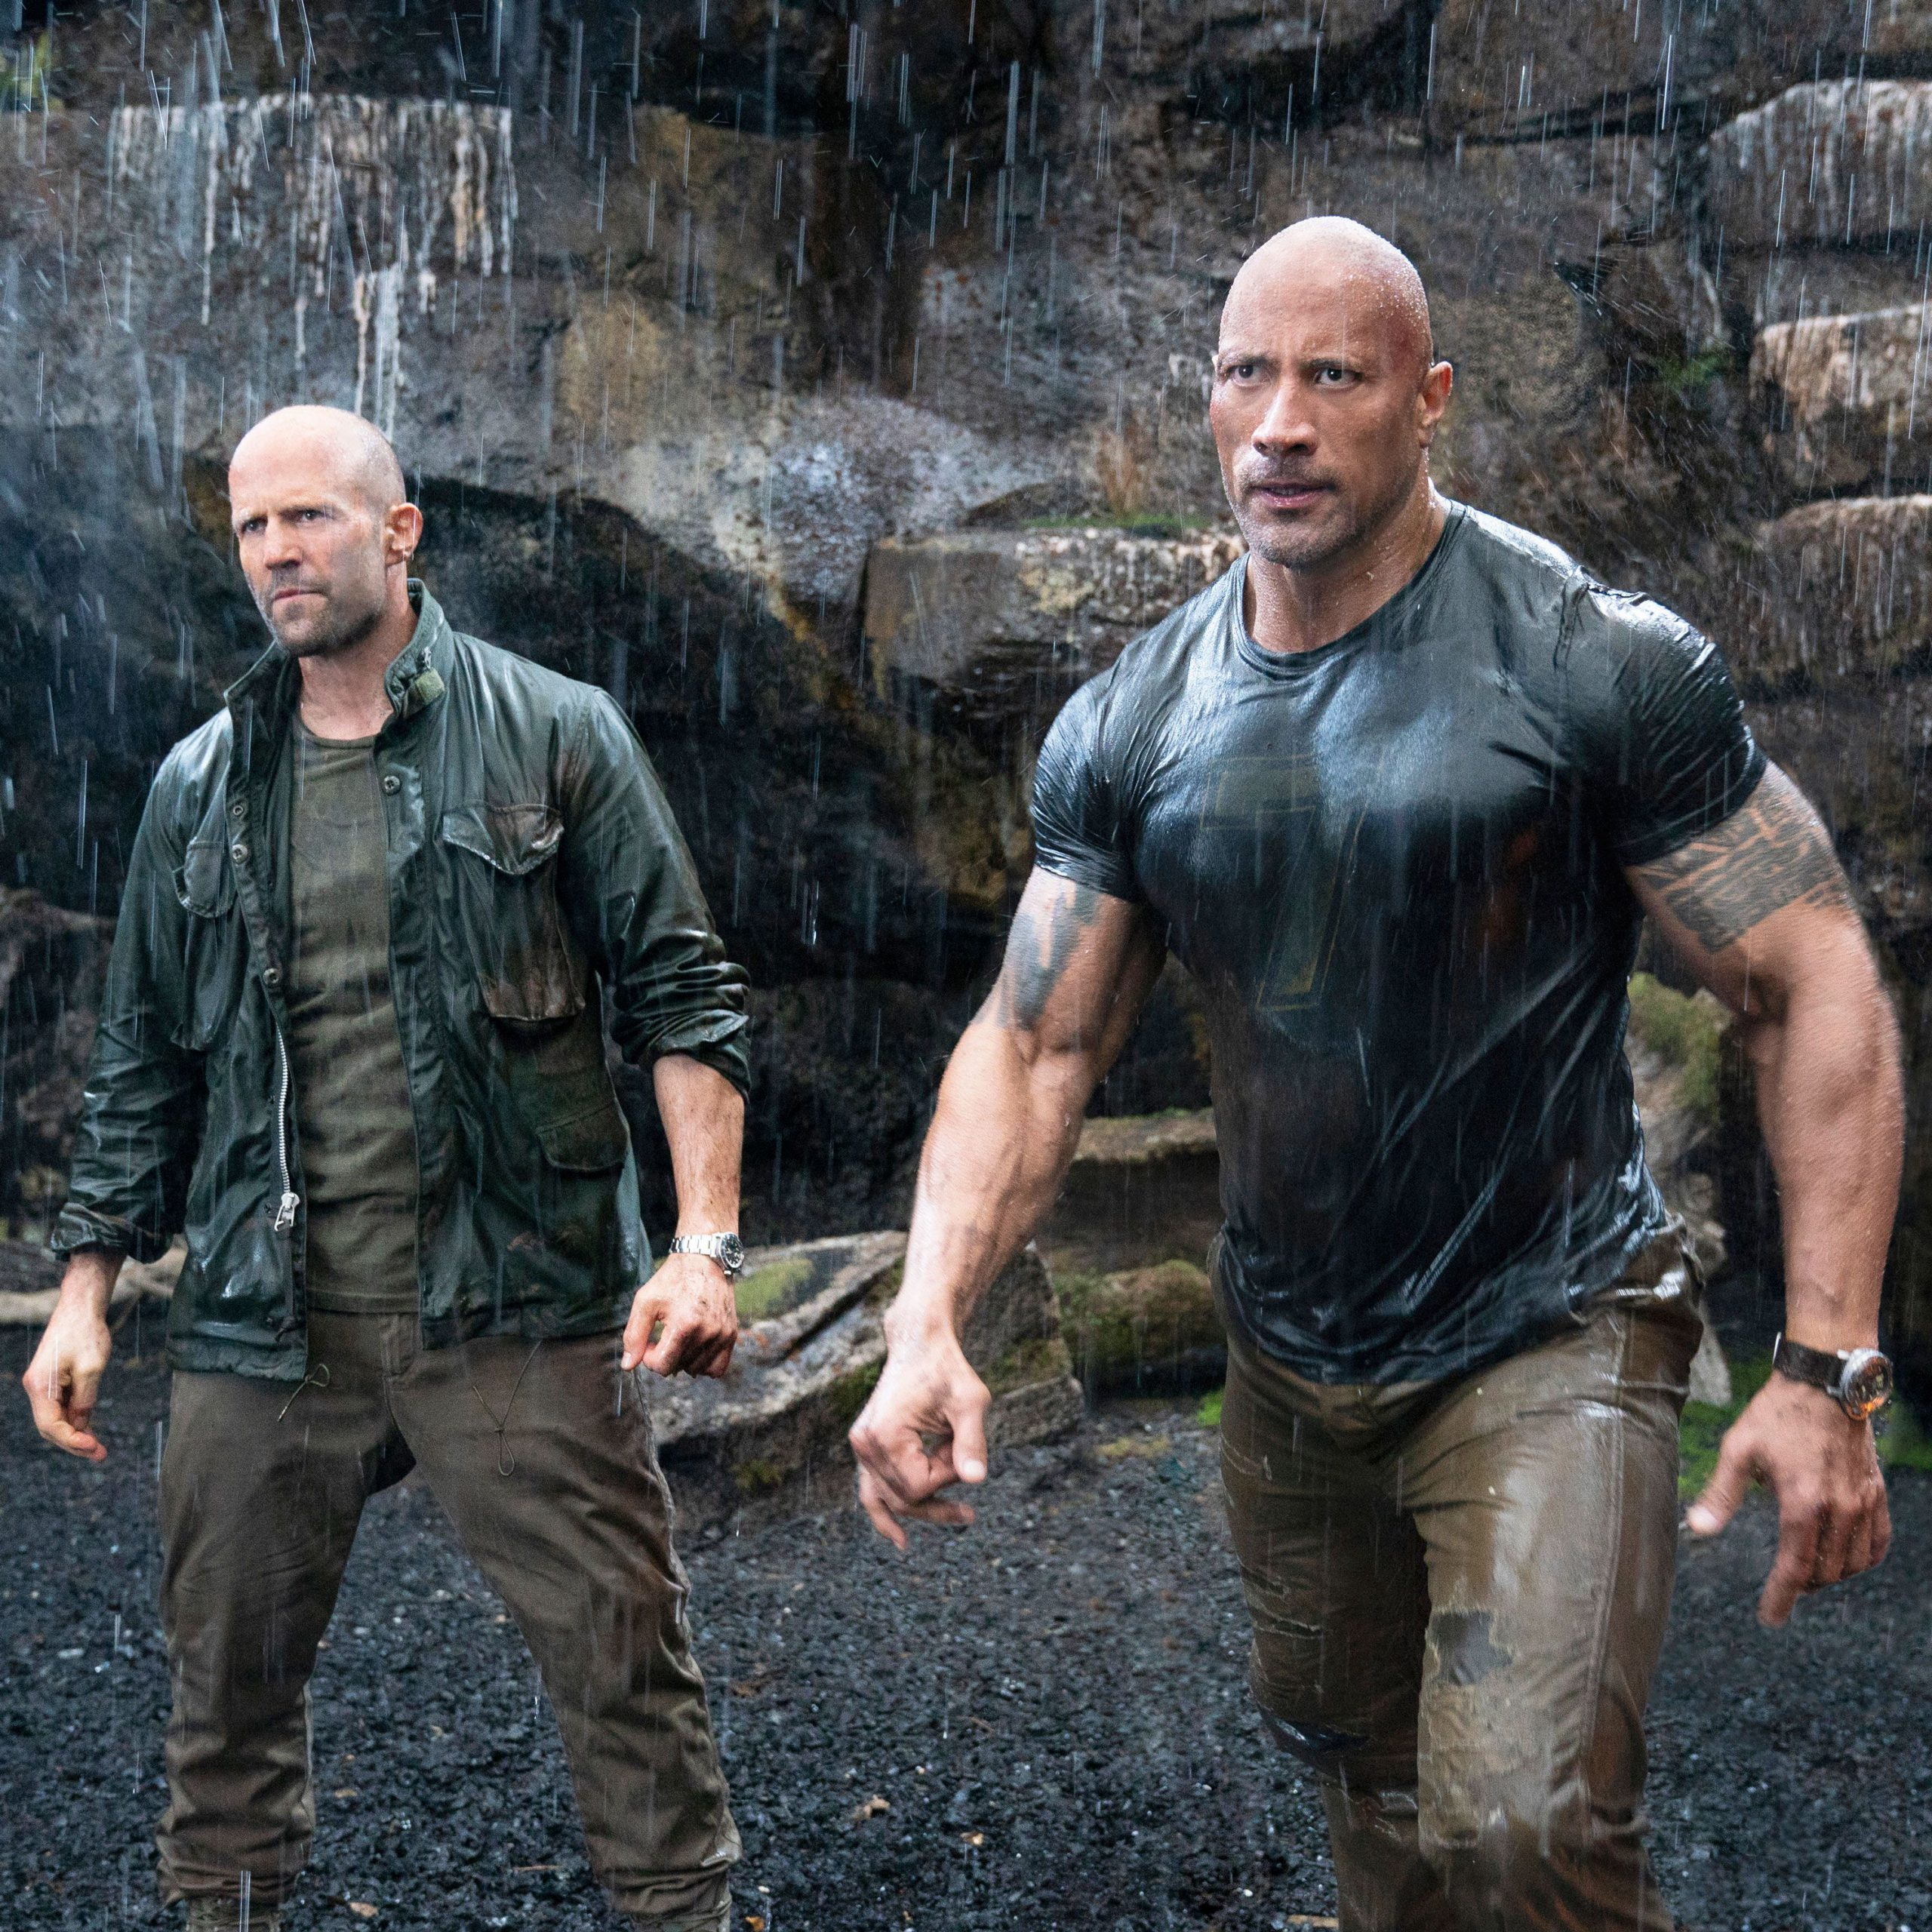 The new guard of action heroes and their watches, from Hobbs & Shaw to John Wick to Triple Frontier